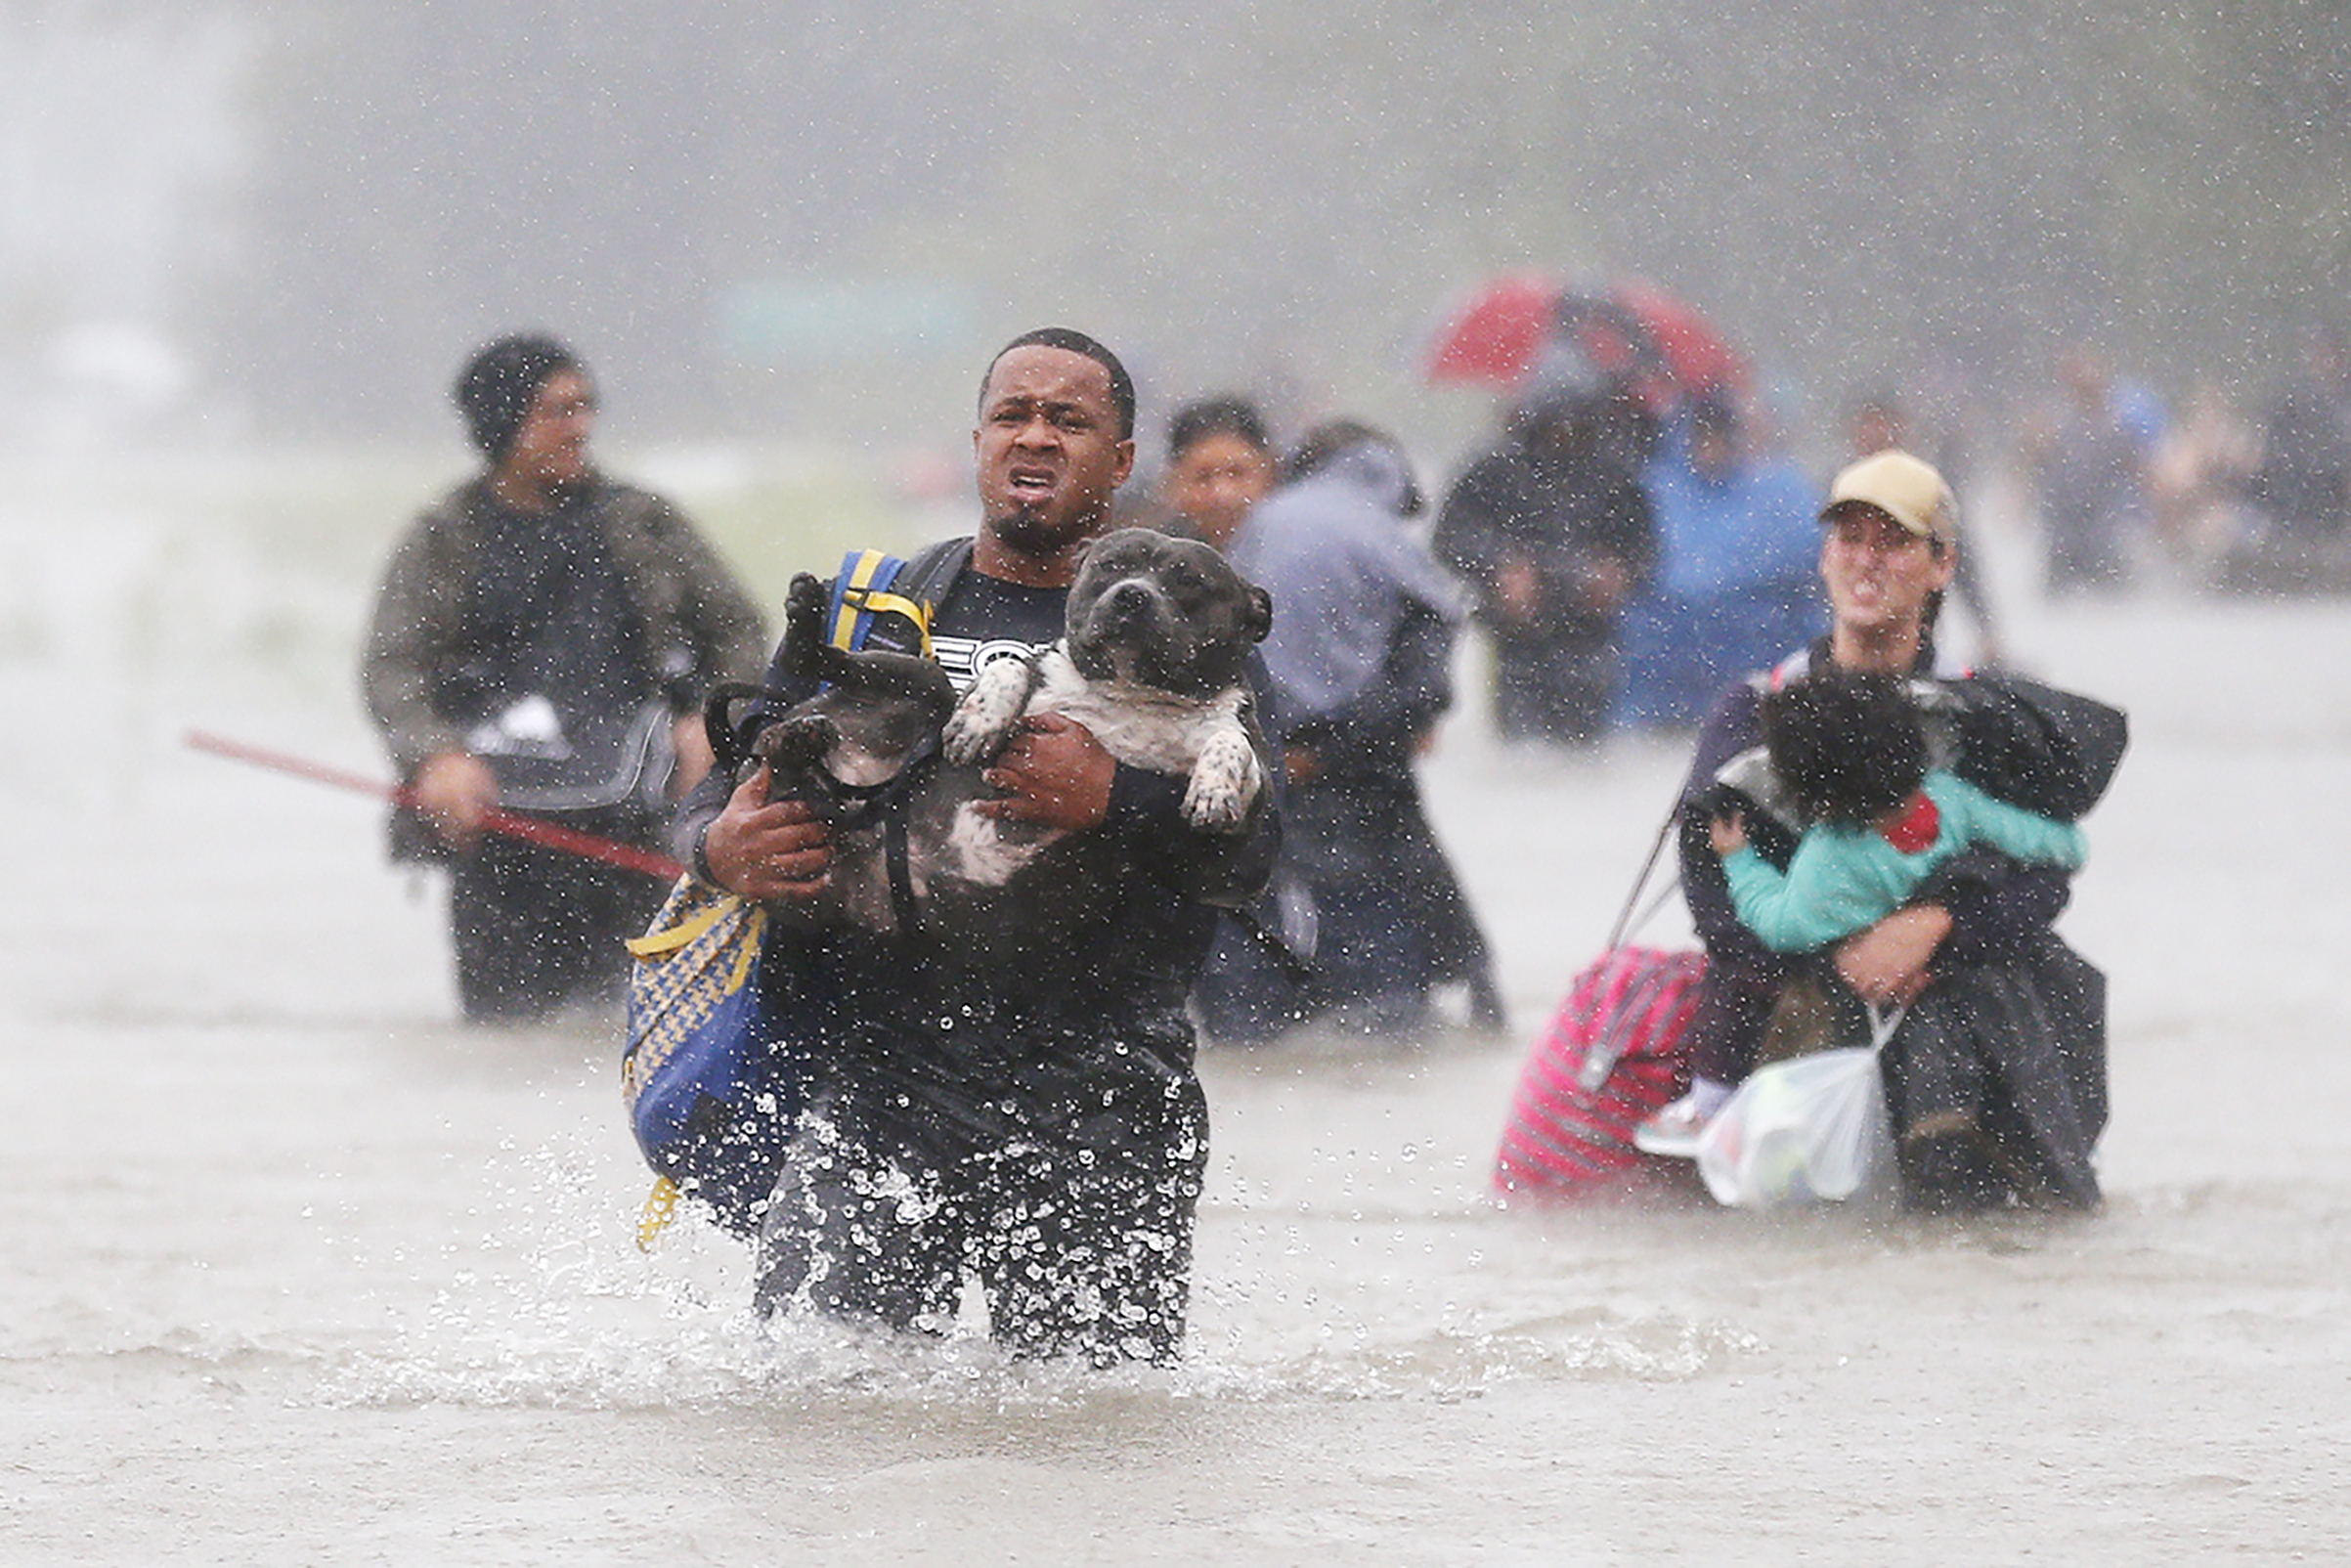 Isiah Courtney carries his dog through floodwaters in this news photograph that sparked an outpouring of support